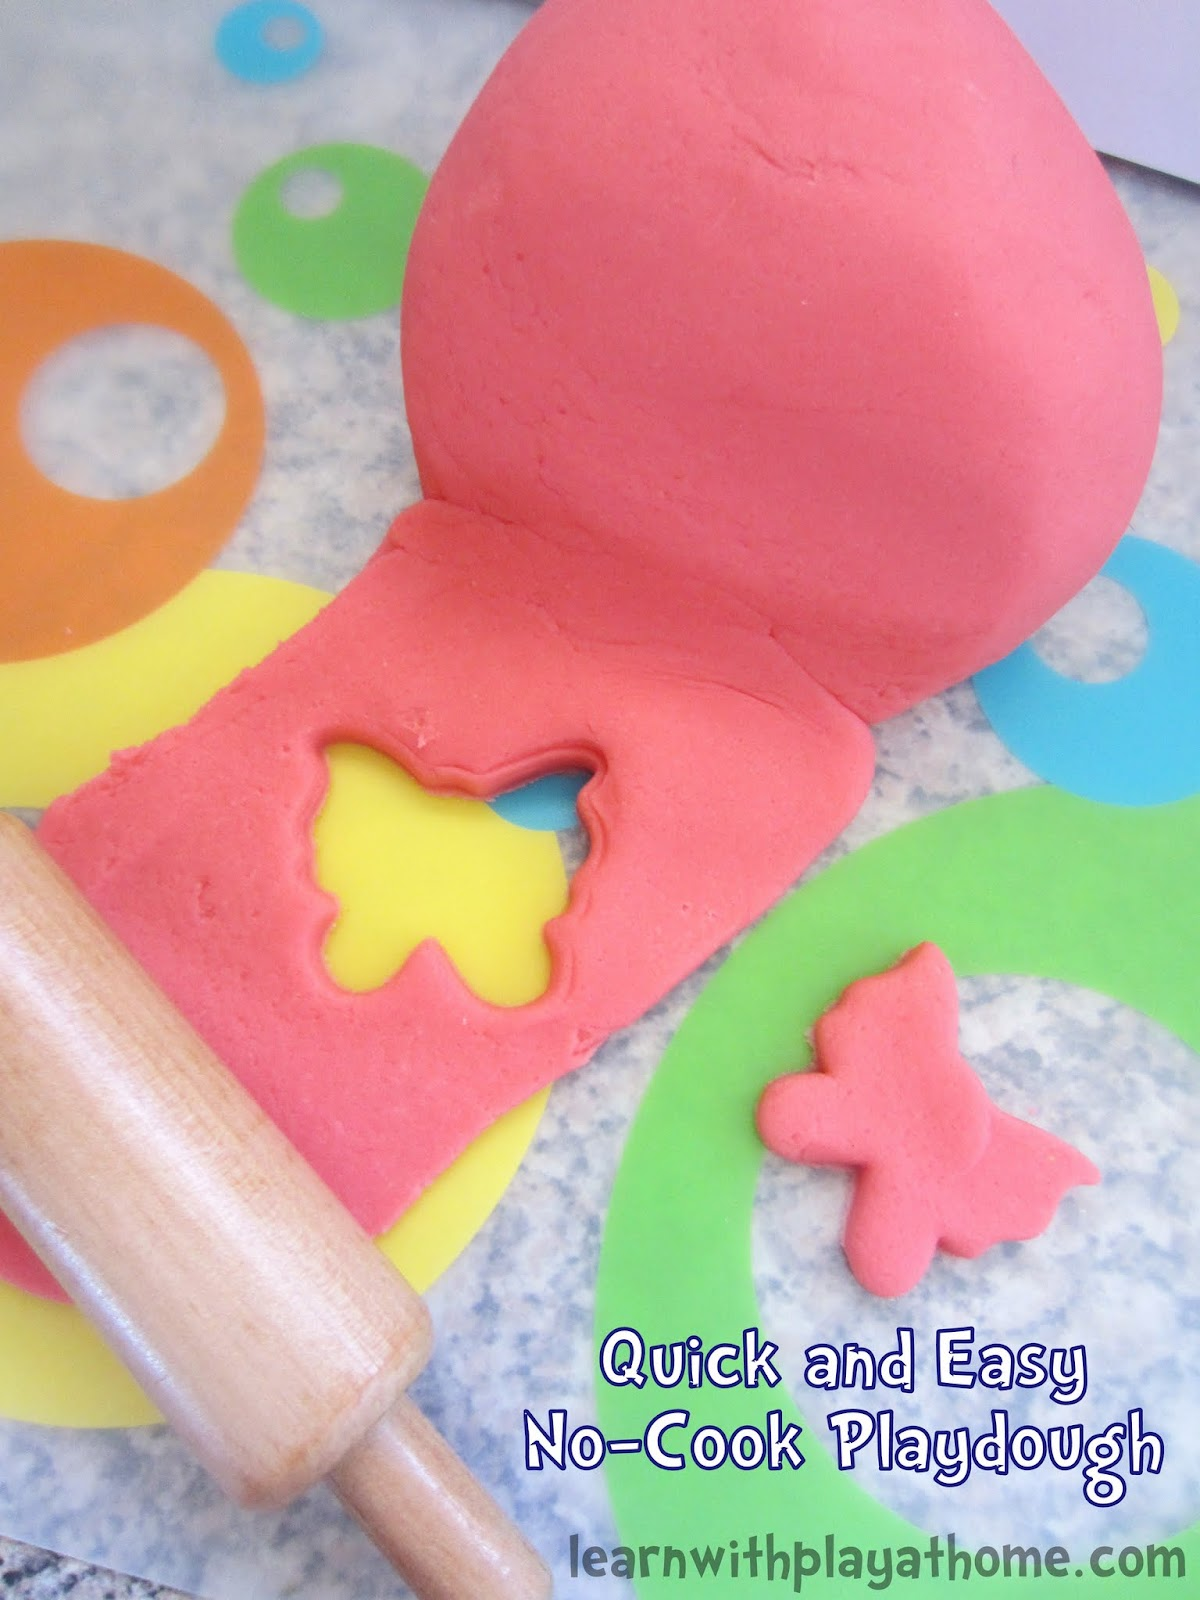 Quick Easy Makeup Tips Ideas For Work: Learn With Play At Home: Quick And Easy No-Cook Playdough